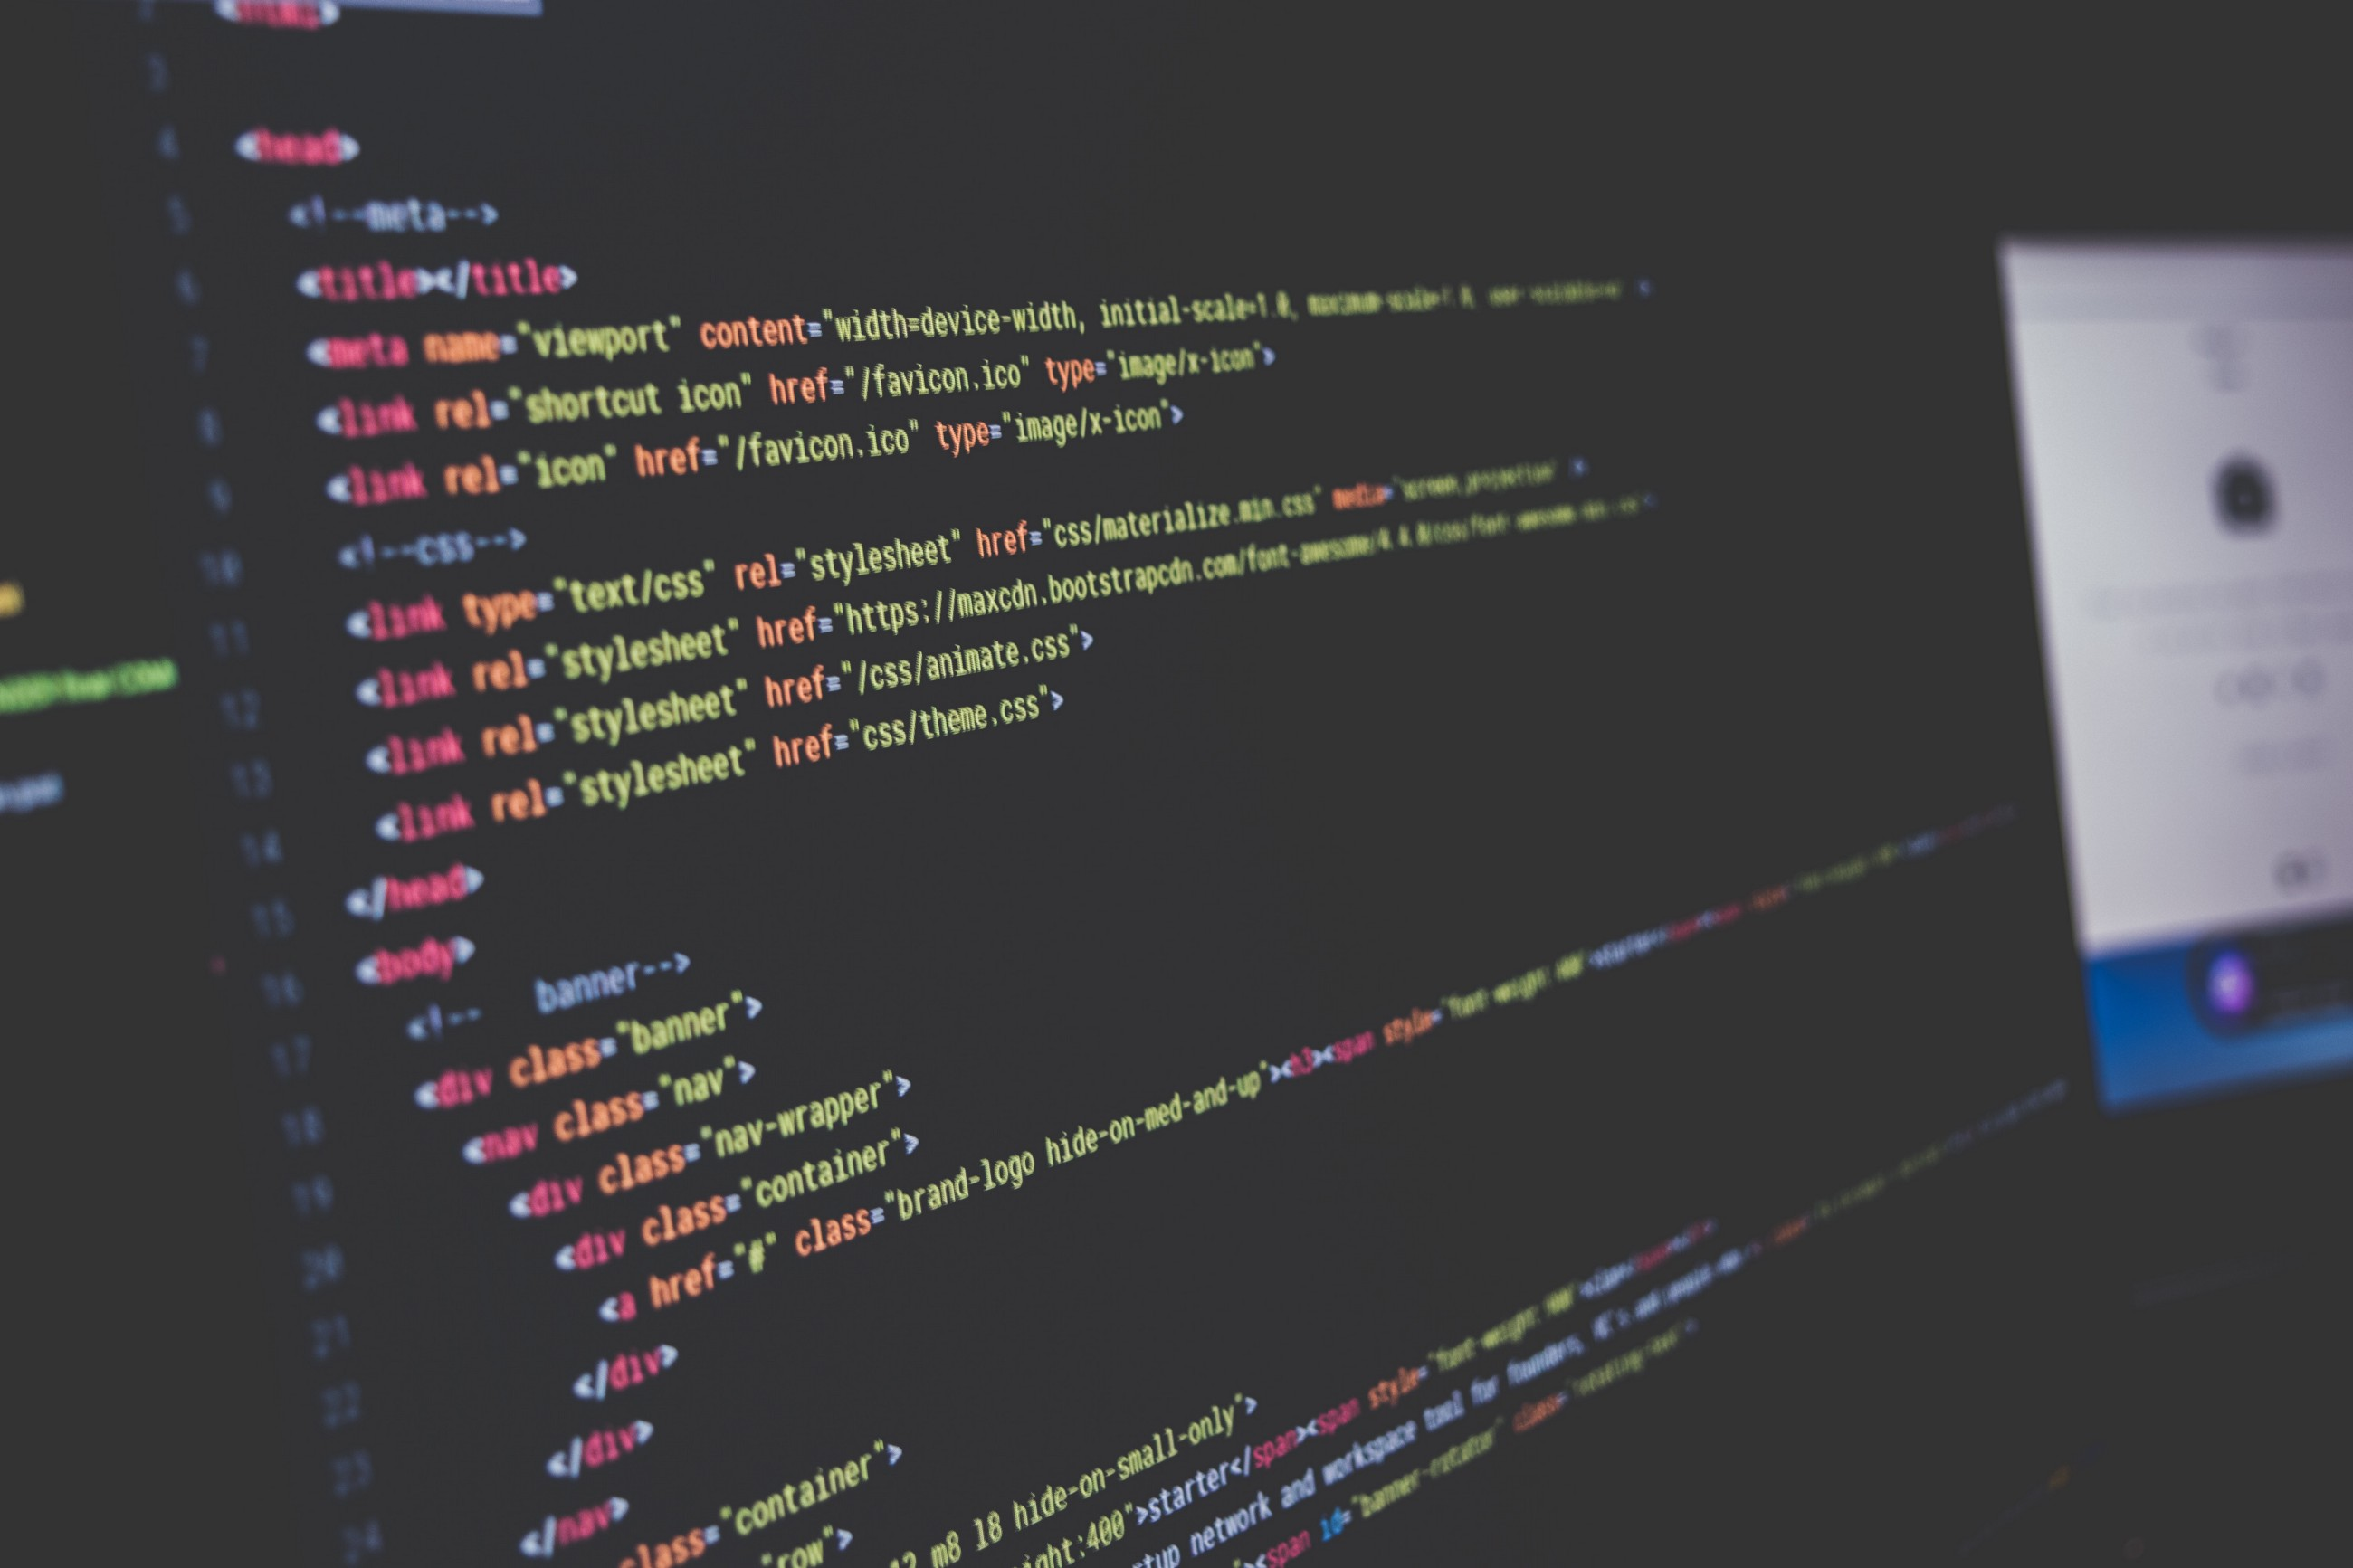 /http-methods-and-why-you-should-be-using-them-on-your-api-98e26b0a7e57 feature image